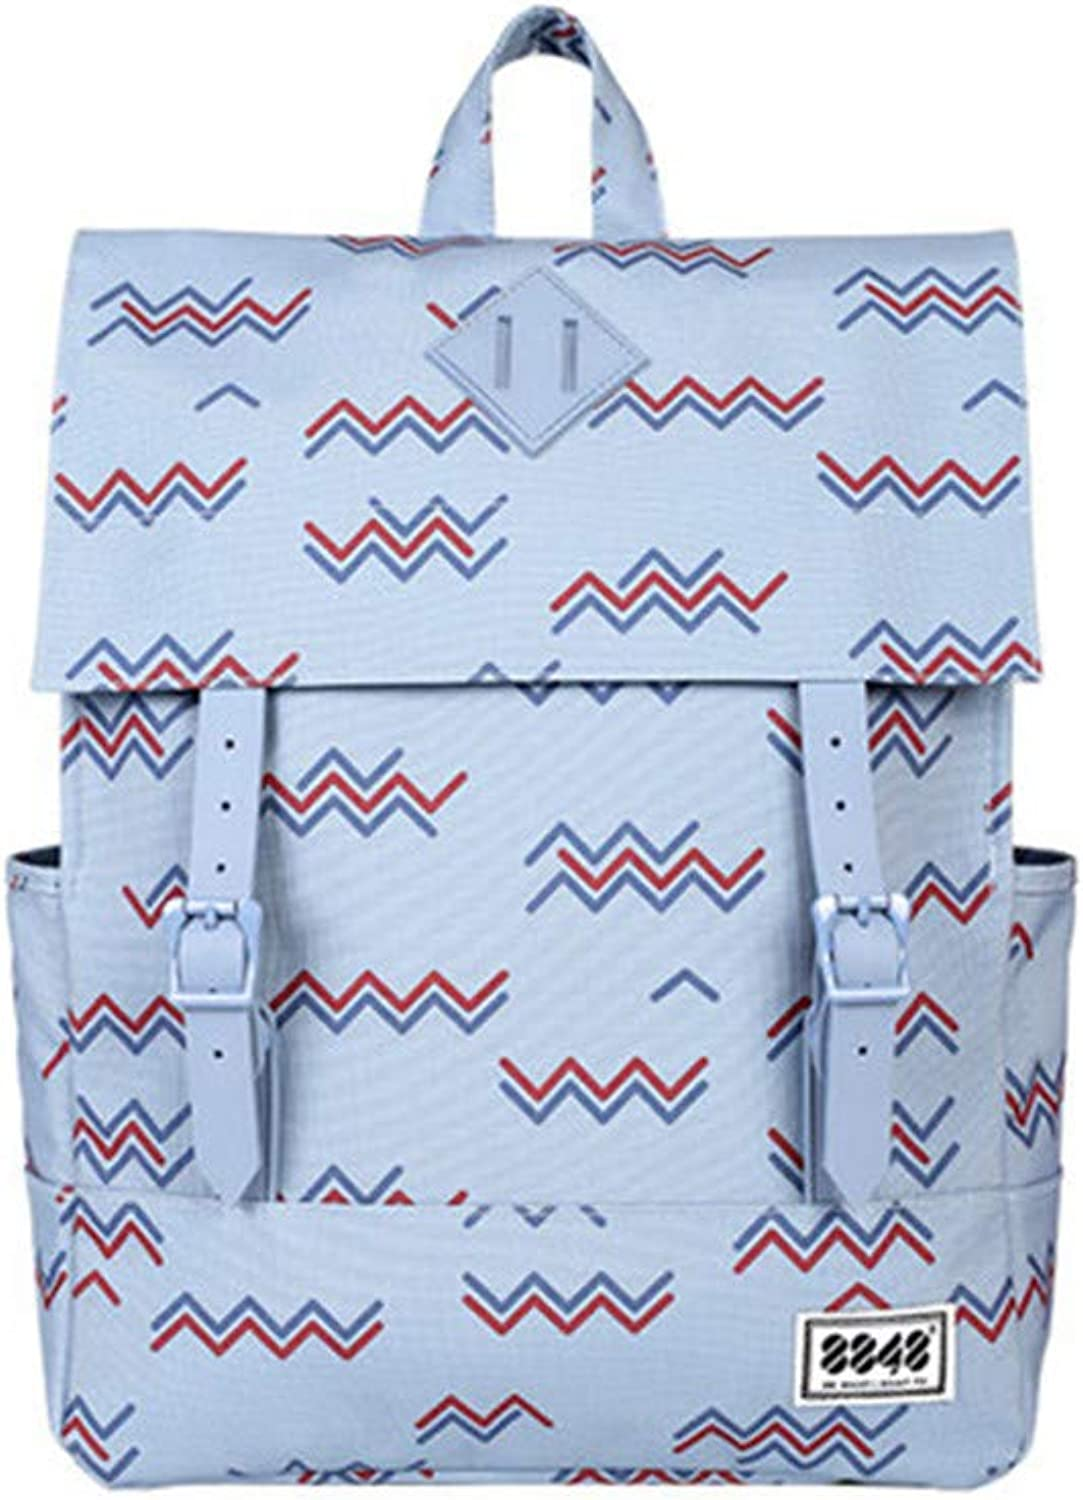 Preppy Style Women Student 15.6 Inch Laptop Soft Back Waterproof Oxford Polyester Material Backpacks Faded Denim Wave